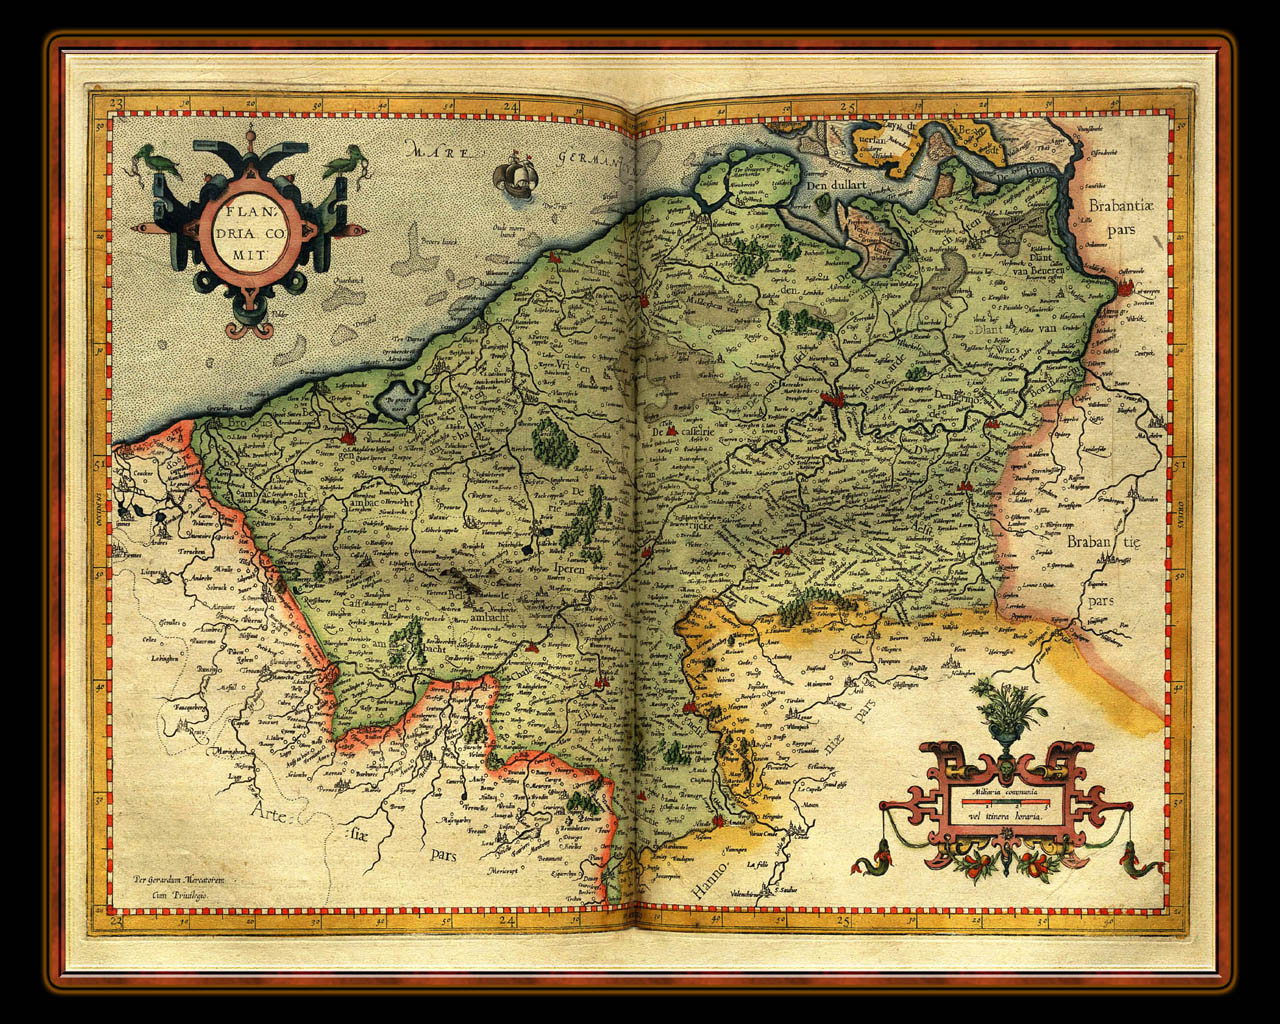 """Gerhard Mercator 1595 World Atlas - Cosmographicae"" - Wallpaper No. 56 of 106. Right click for saving options."